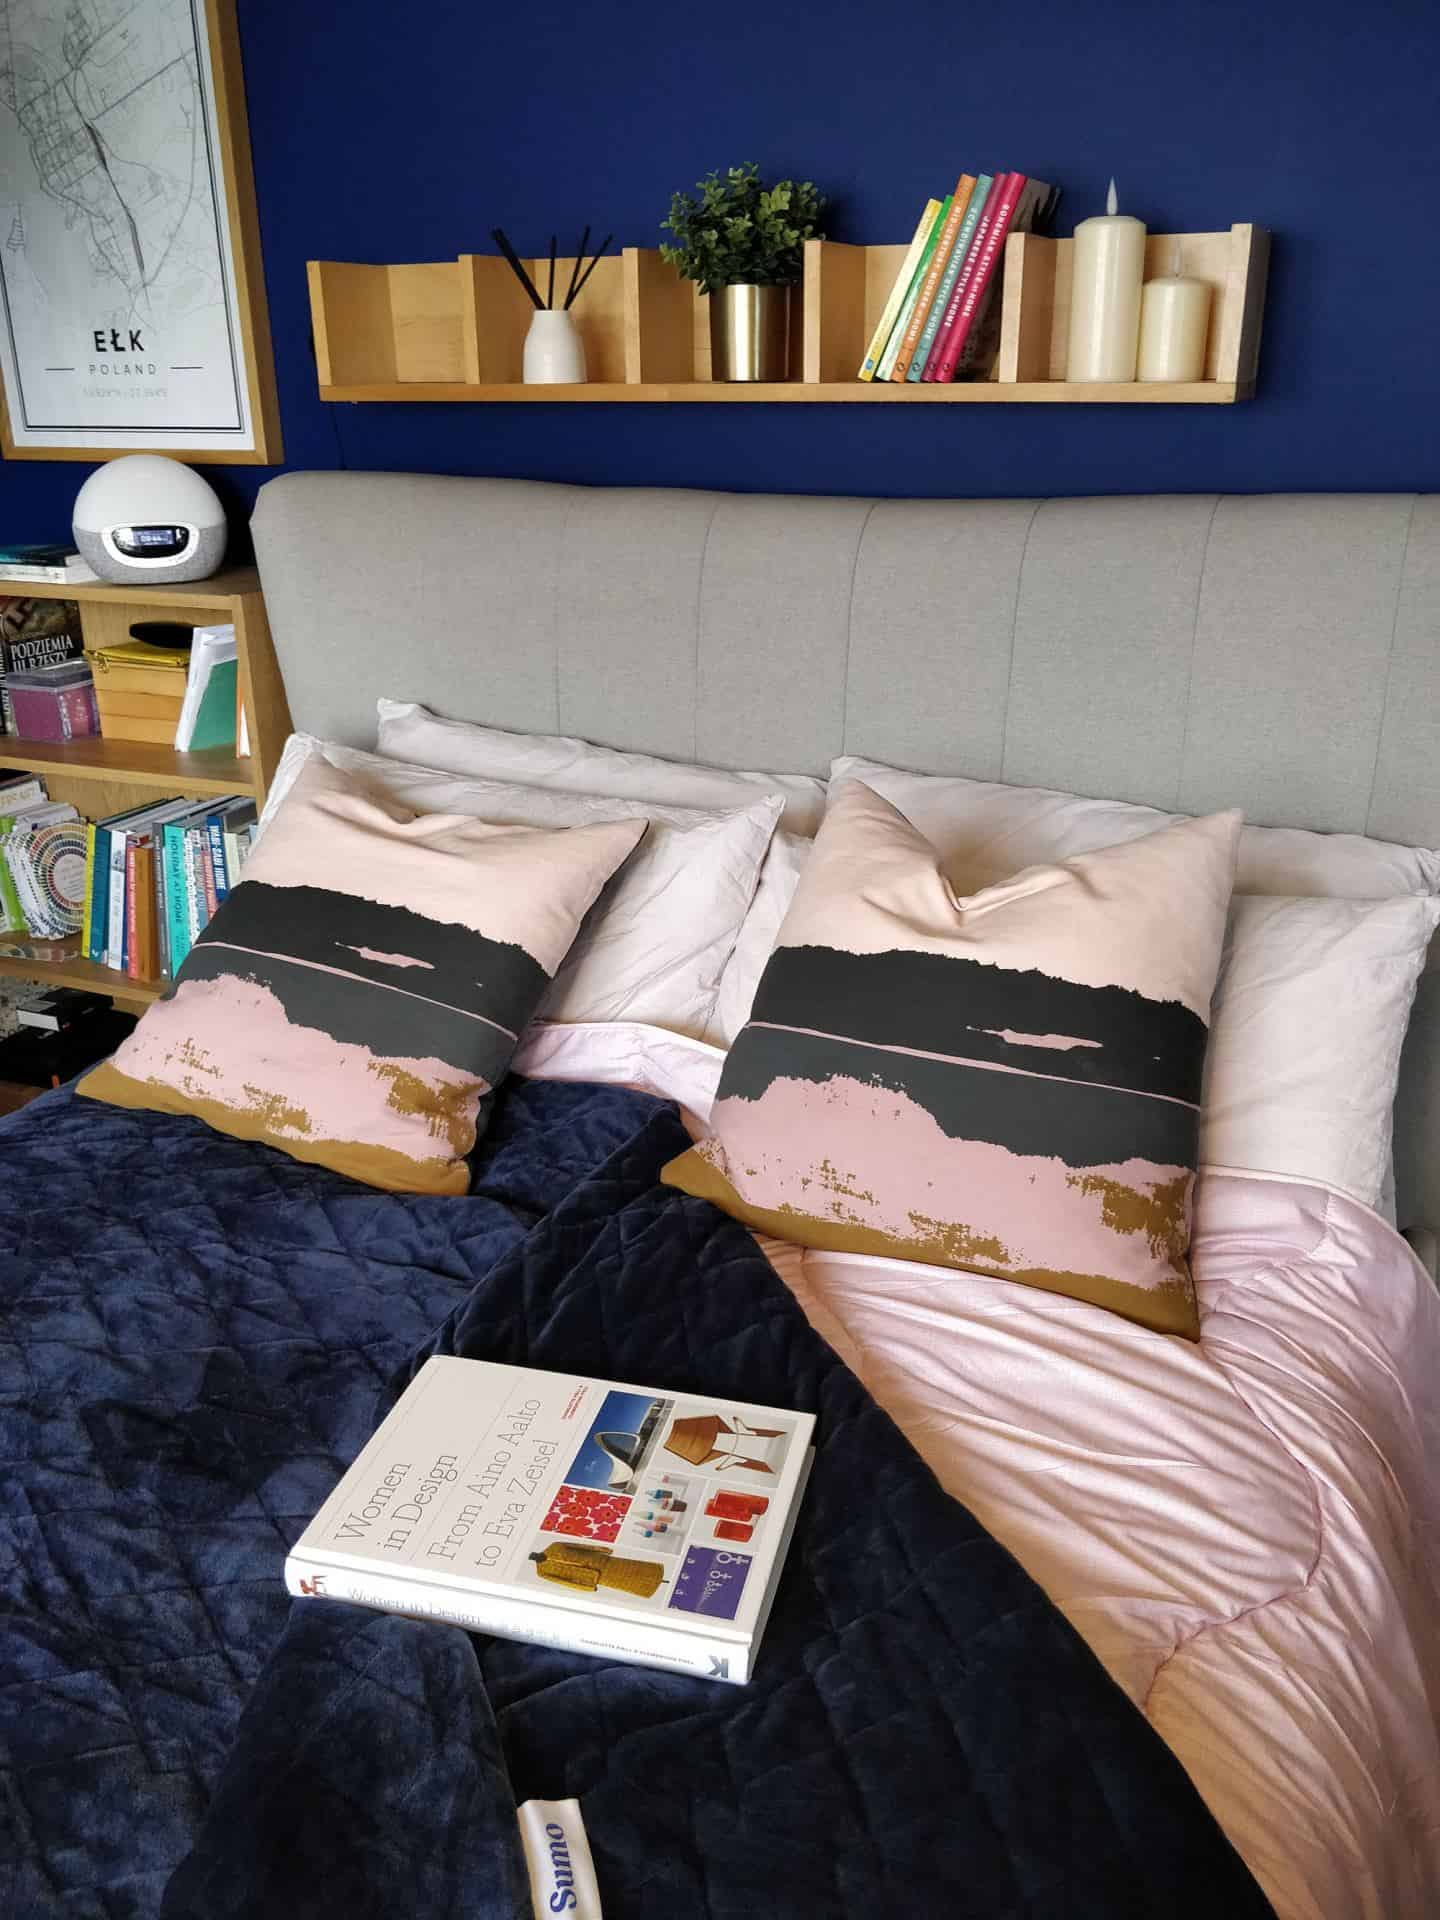 World Sleep Day 2020-5 Ways to Improve your Sleep. A double bed with pink and blue bedding